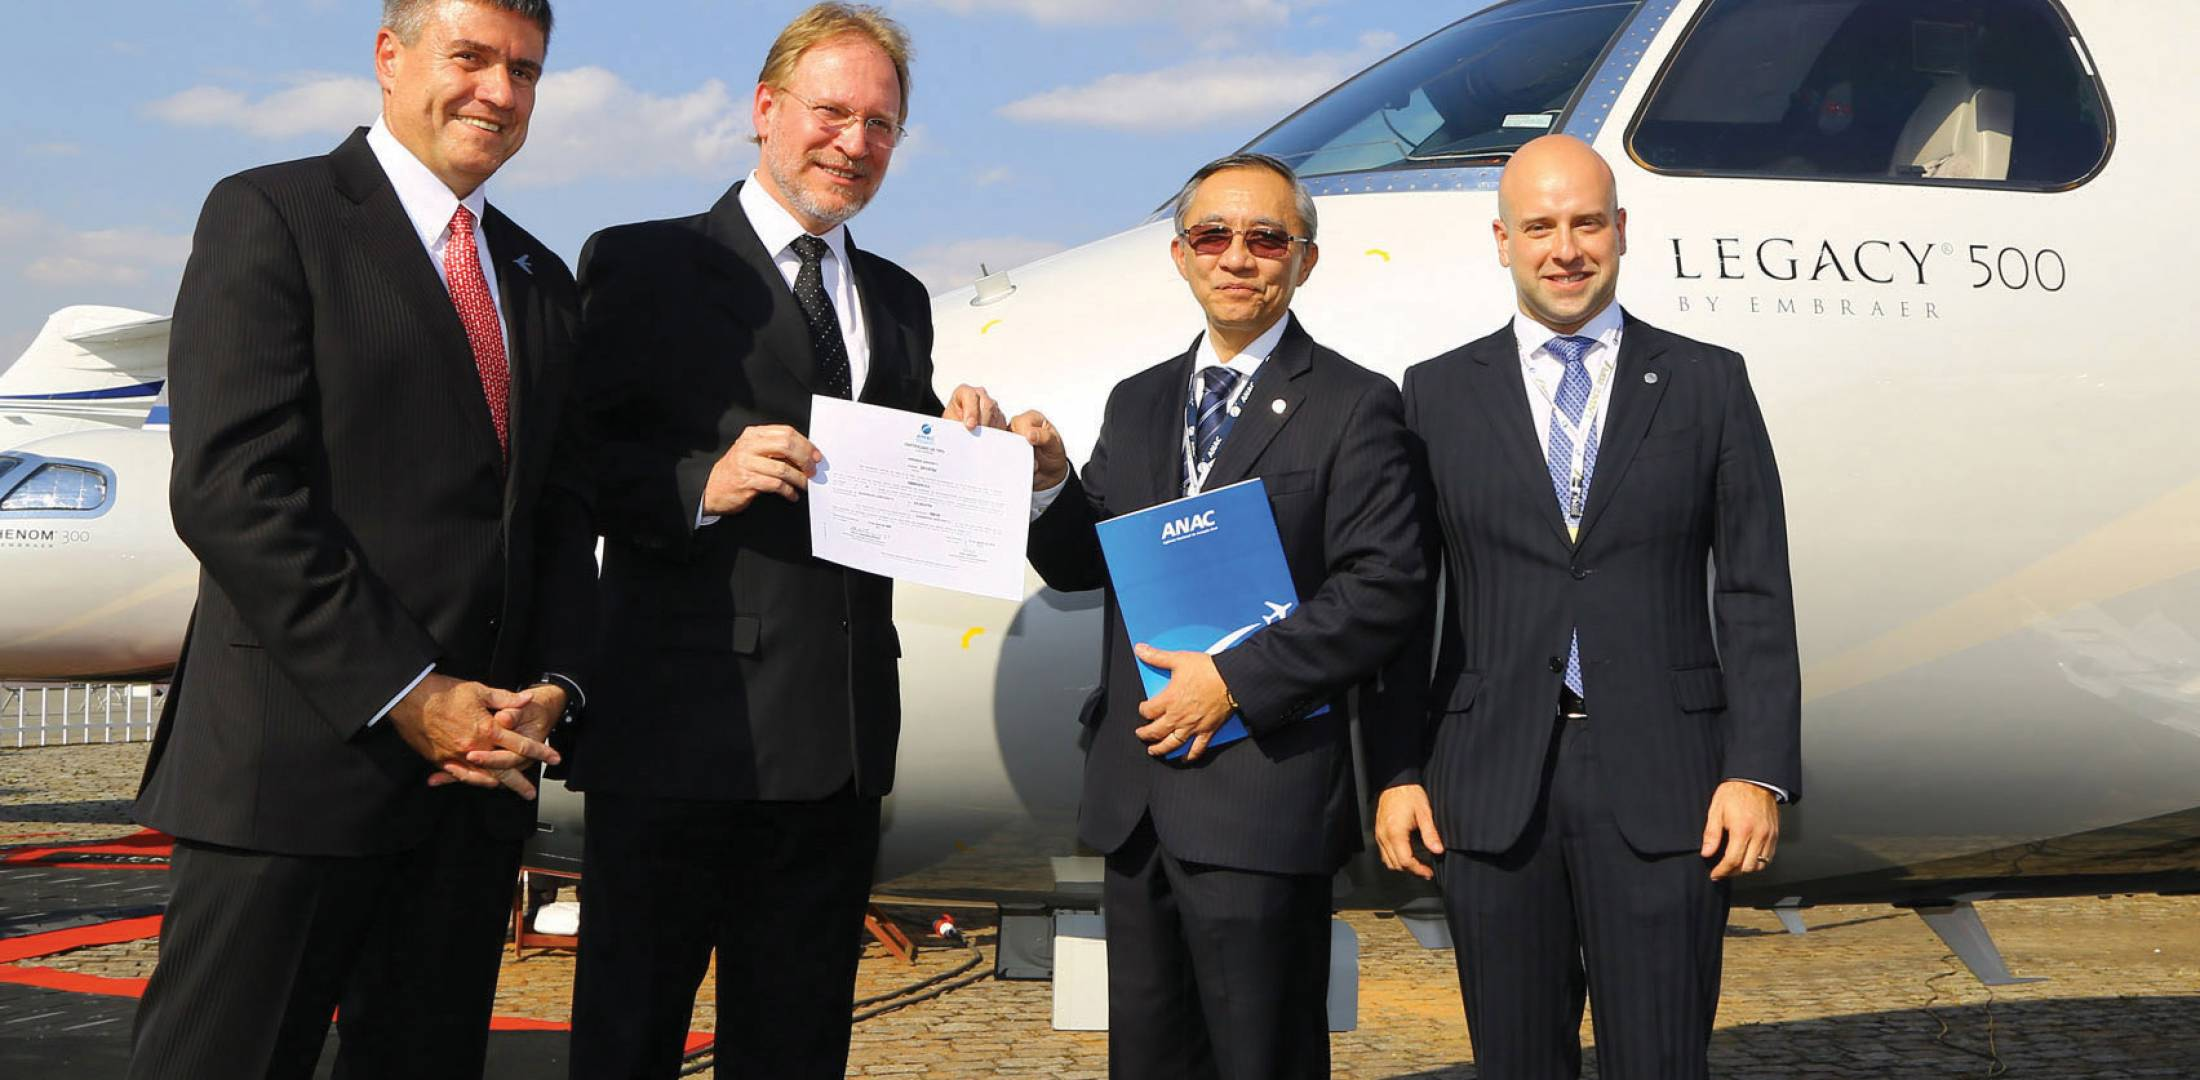 Celebrating ANAC certification of the Legacy 500 are (left to right) Embraer CEO Marco Túlio Pellegrini; Mauro Kern, Embraer executive v-p of technology and engineering; and ANAC officials Dino Ishikura and Marcelo Pacheco dos Guaranys. (Photo: David McIntosh)